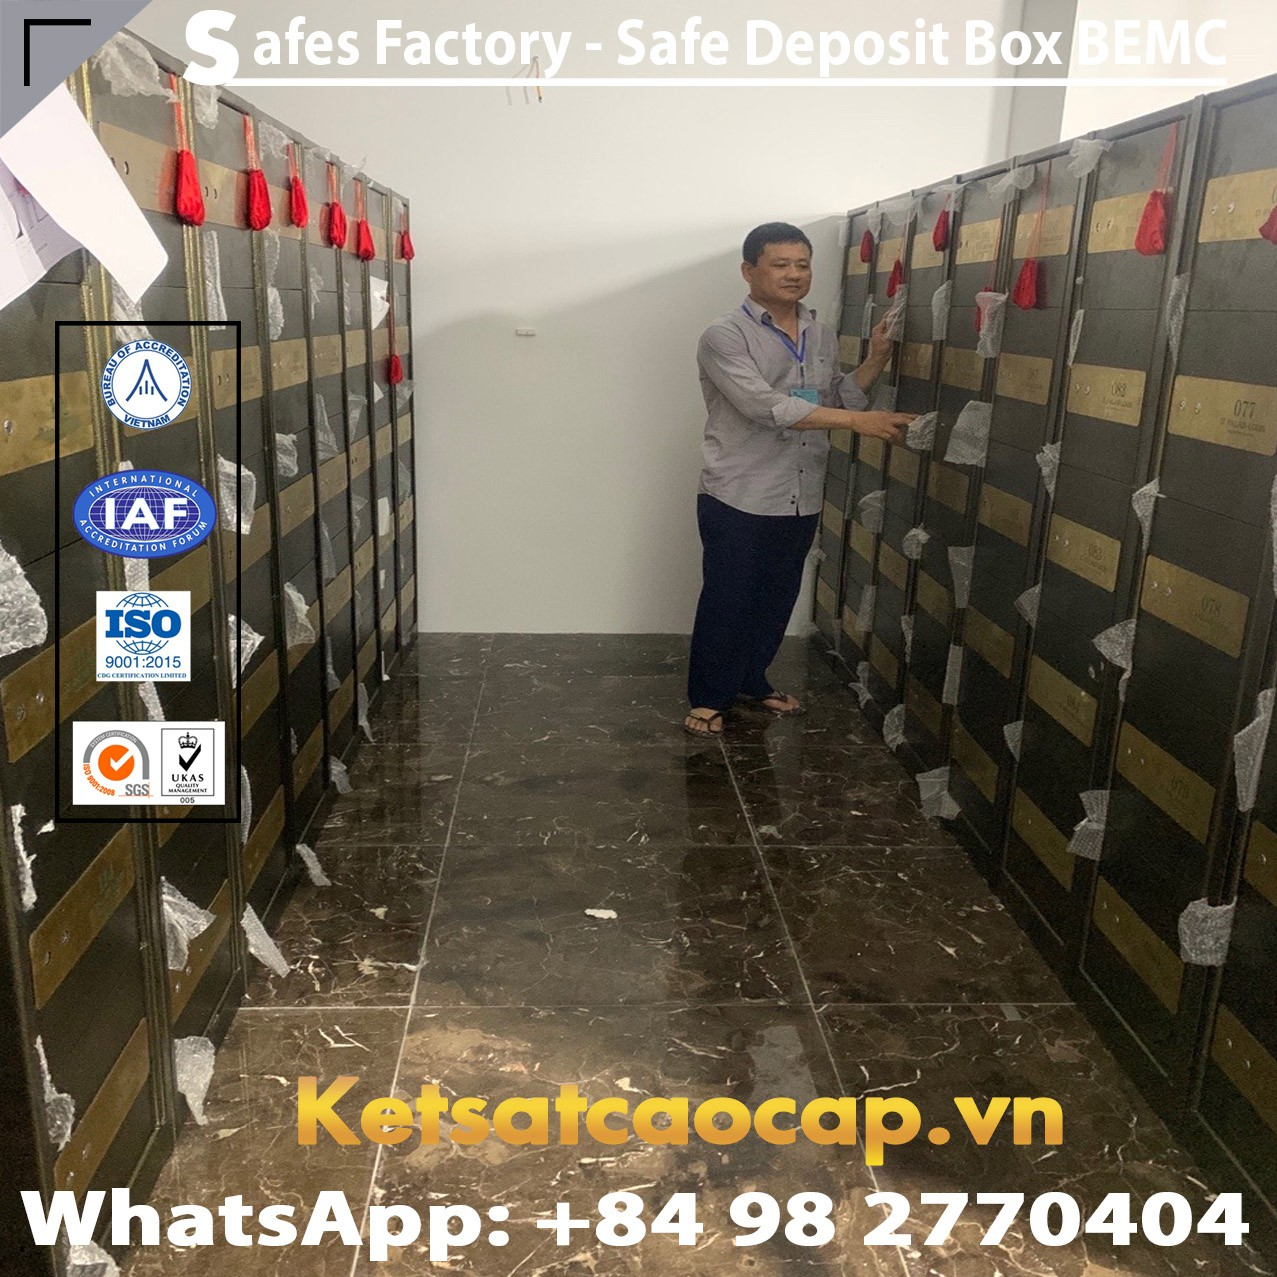 Viet Nam Safe Deposit Box | Trusted and Audited Suppliers